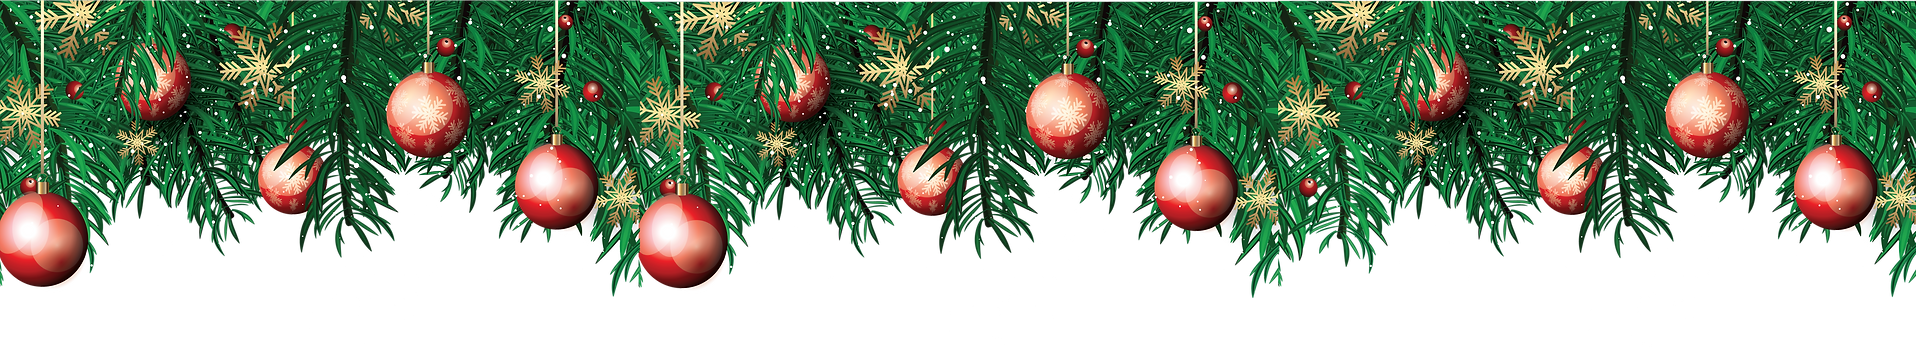 background ornaments-01.png